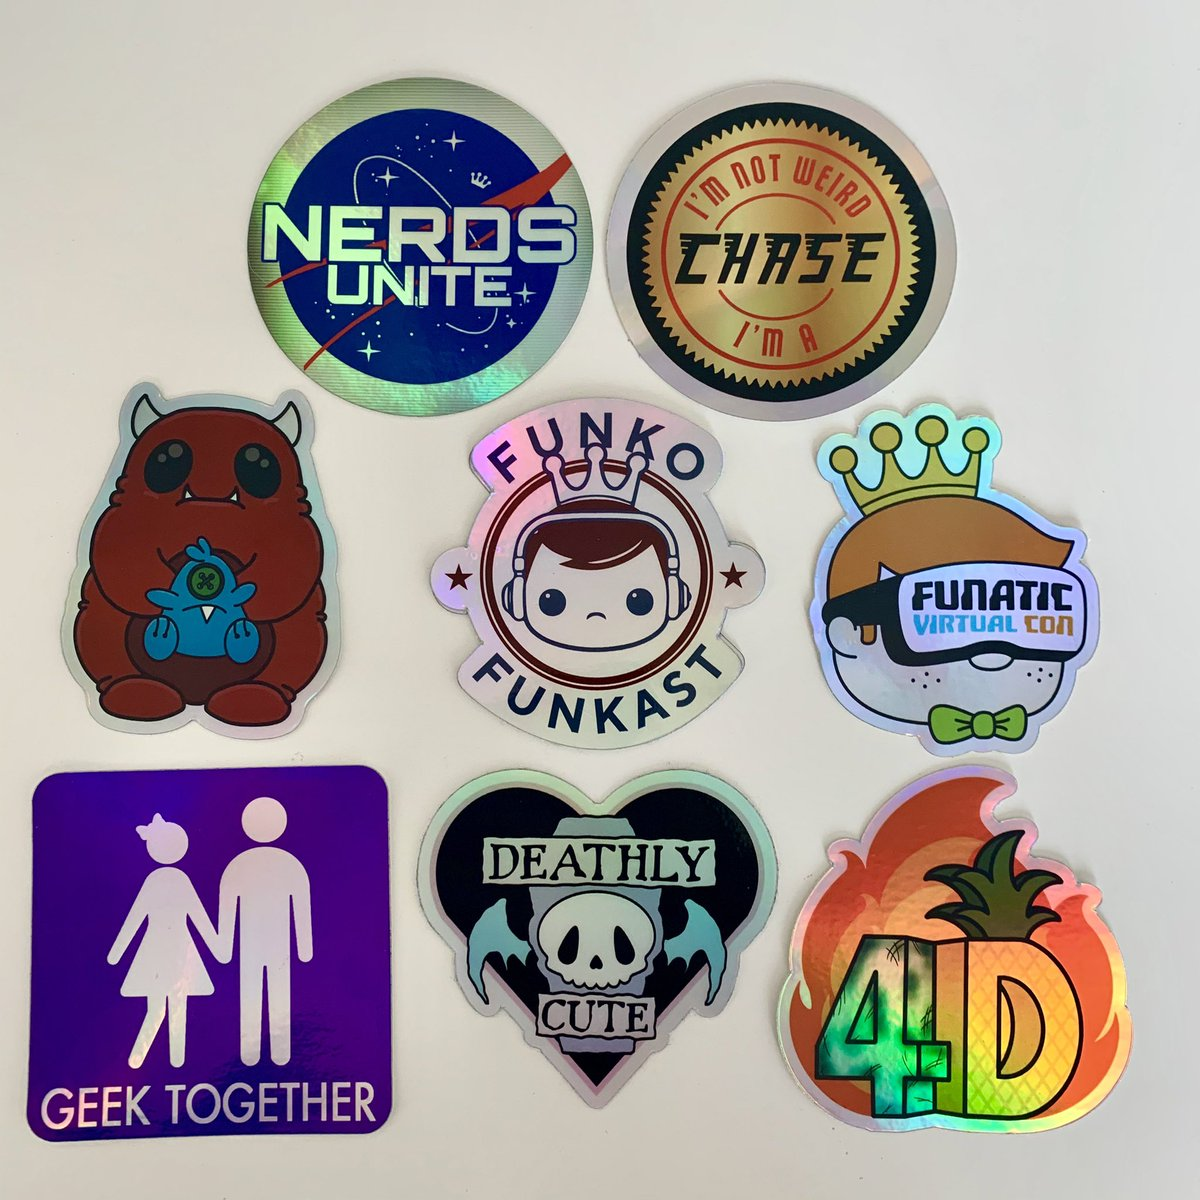 Those @stickermule #HolographicStickers are so hot right now... pic.twitter.com/iv9xTG5RBU